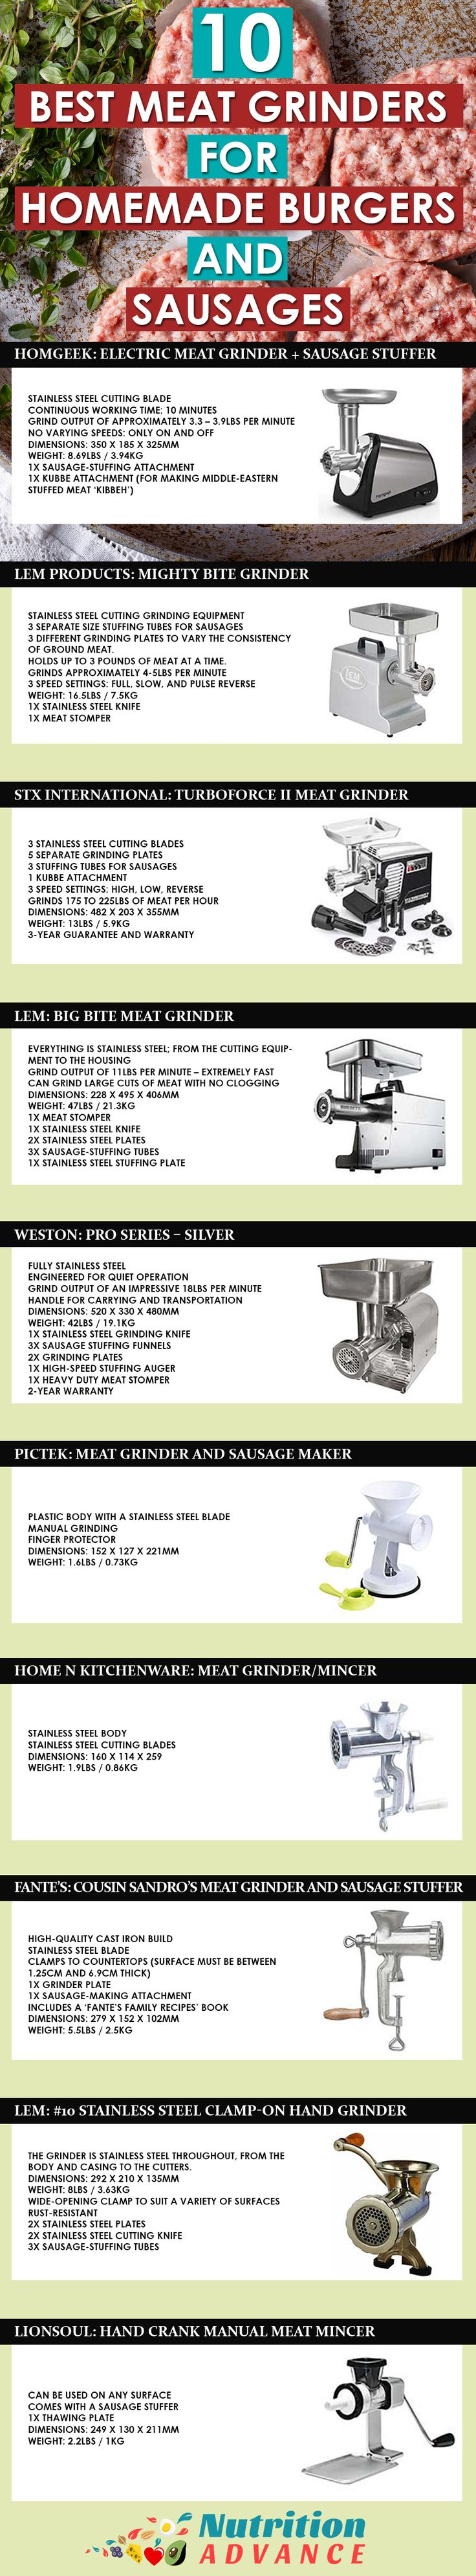 Homemade Burgers and Sausages Made Easy! Did you know that we can make homemade burgers and sausages from just about any cuts of meat....steak, bacon, liver? It's not as expensive as you'd think either, with home meat grinders starting from below $40! Here are ten of the best manual and electronic options for meat grinders.   Read more at: http;//nutritionadvance.com/meat-grinders   Via: @nutradvance